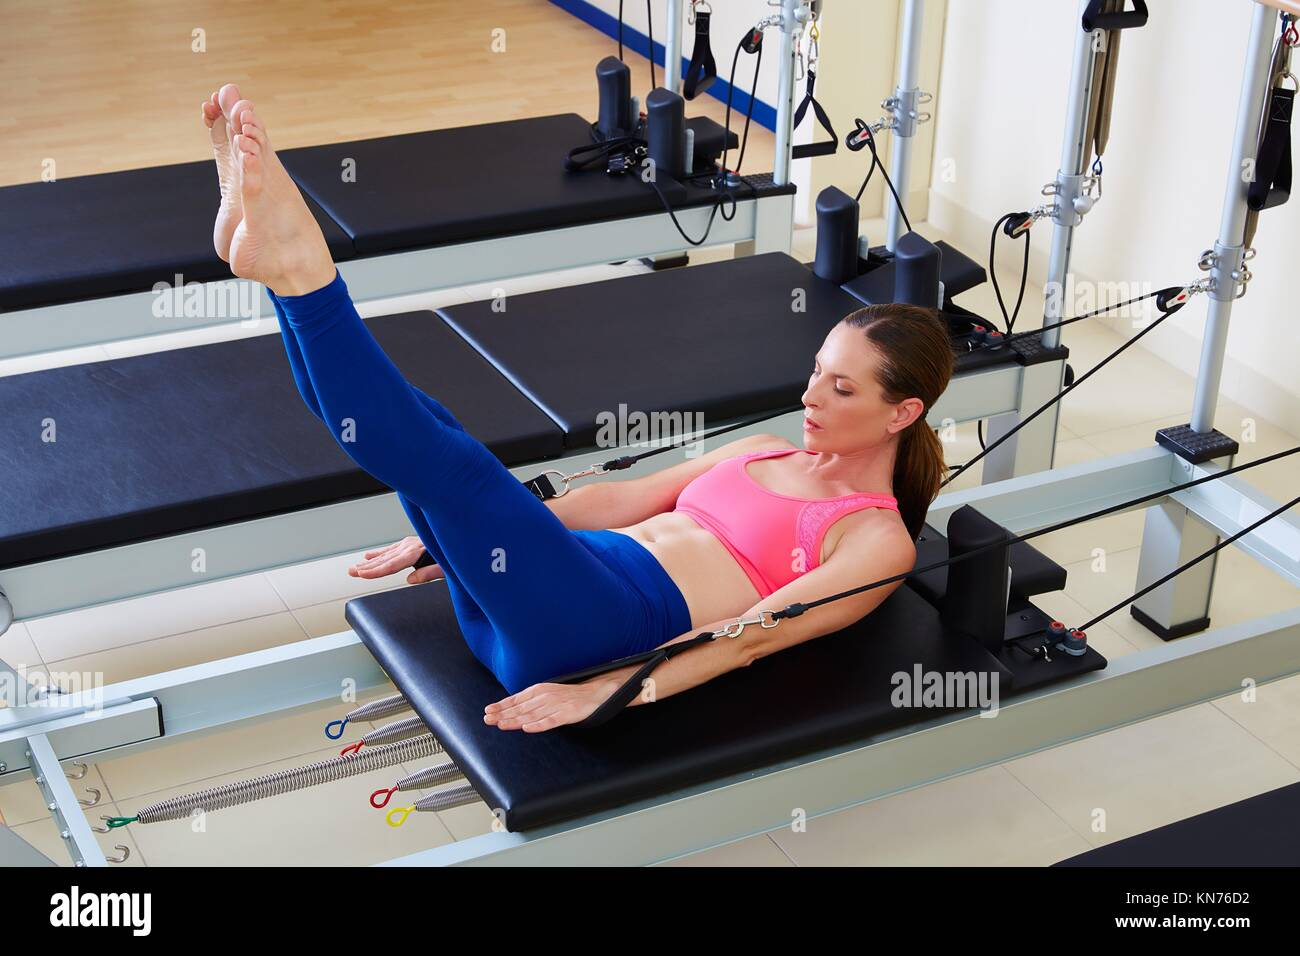 Pilates reformer woman hundred exercise workout at gym indoor. - Stock Image